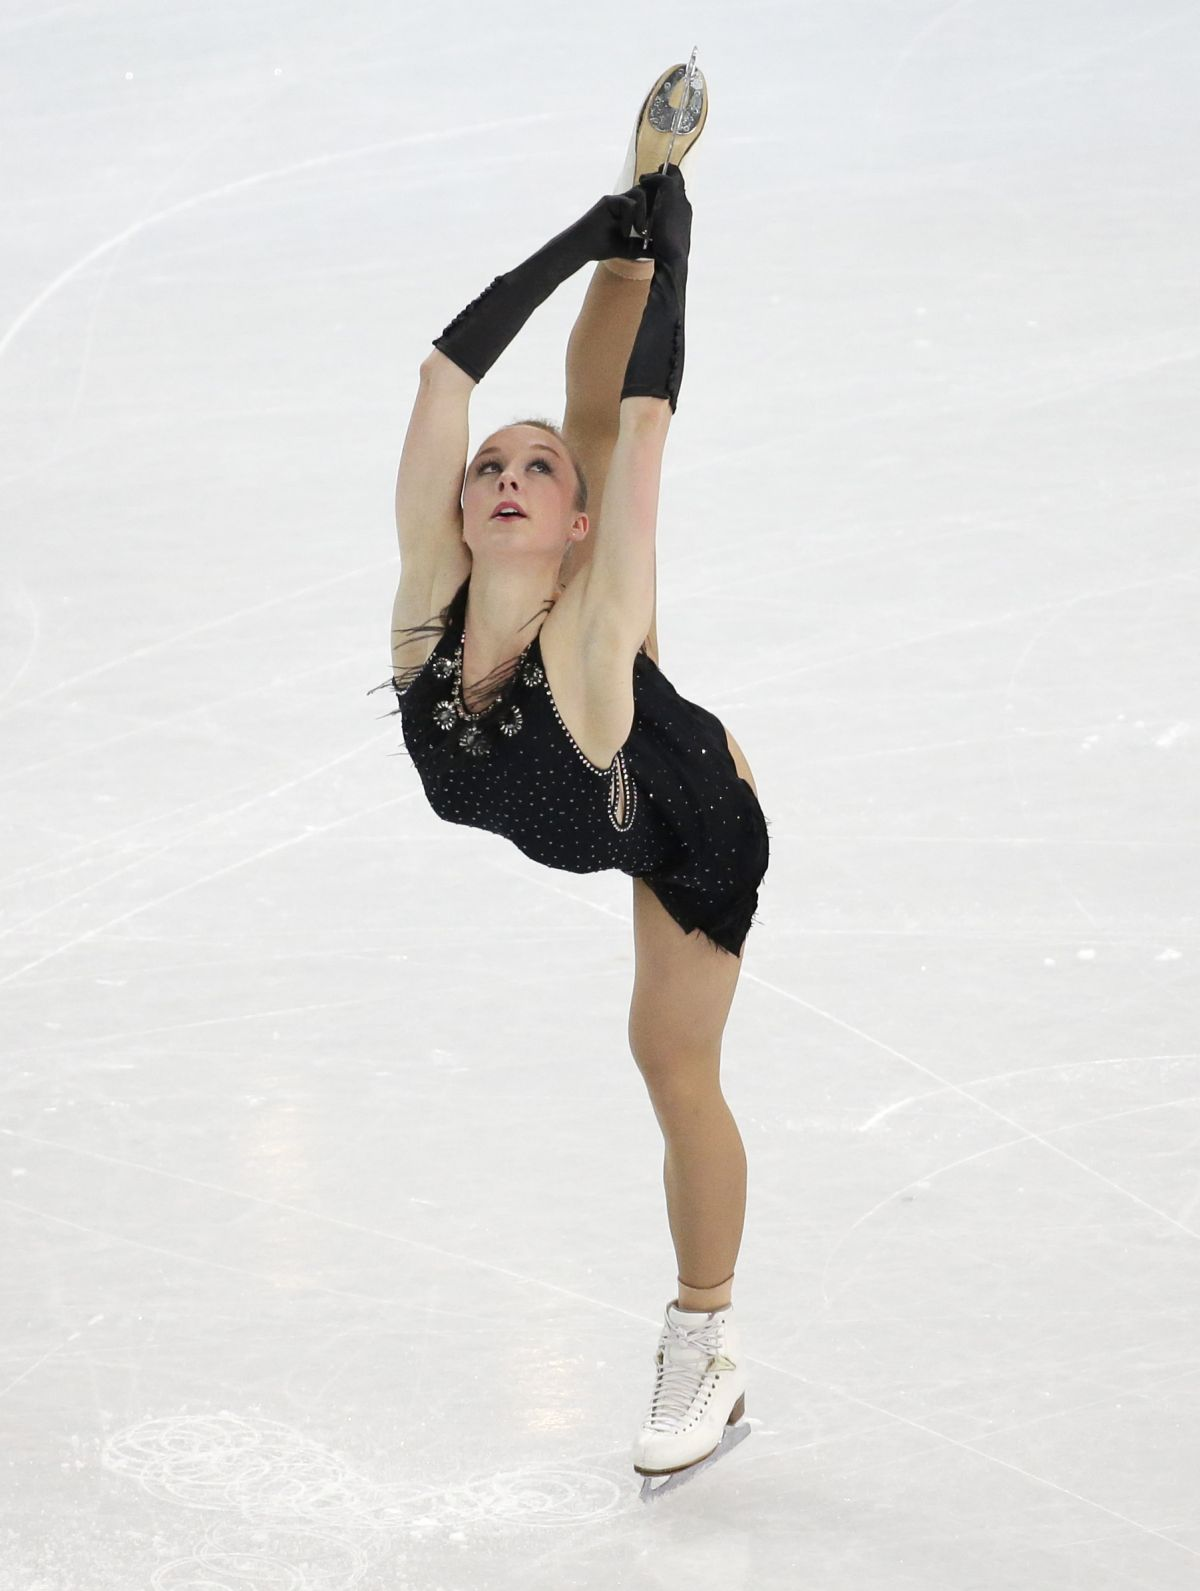 NATHALIE WEINZIERL at 2014 Winter Olympics in Sochi